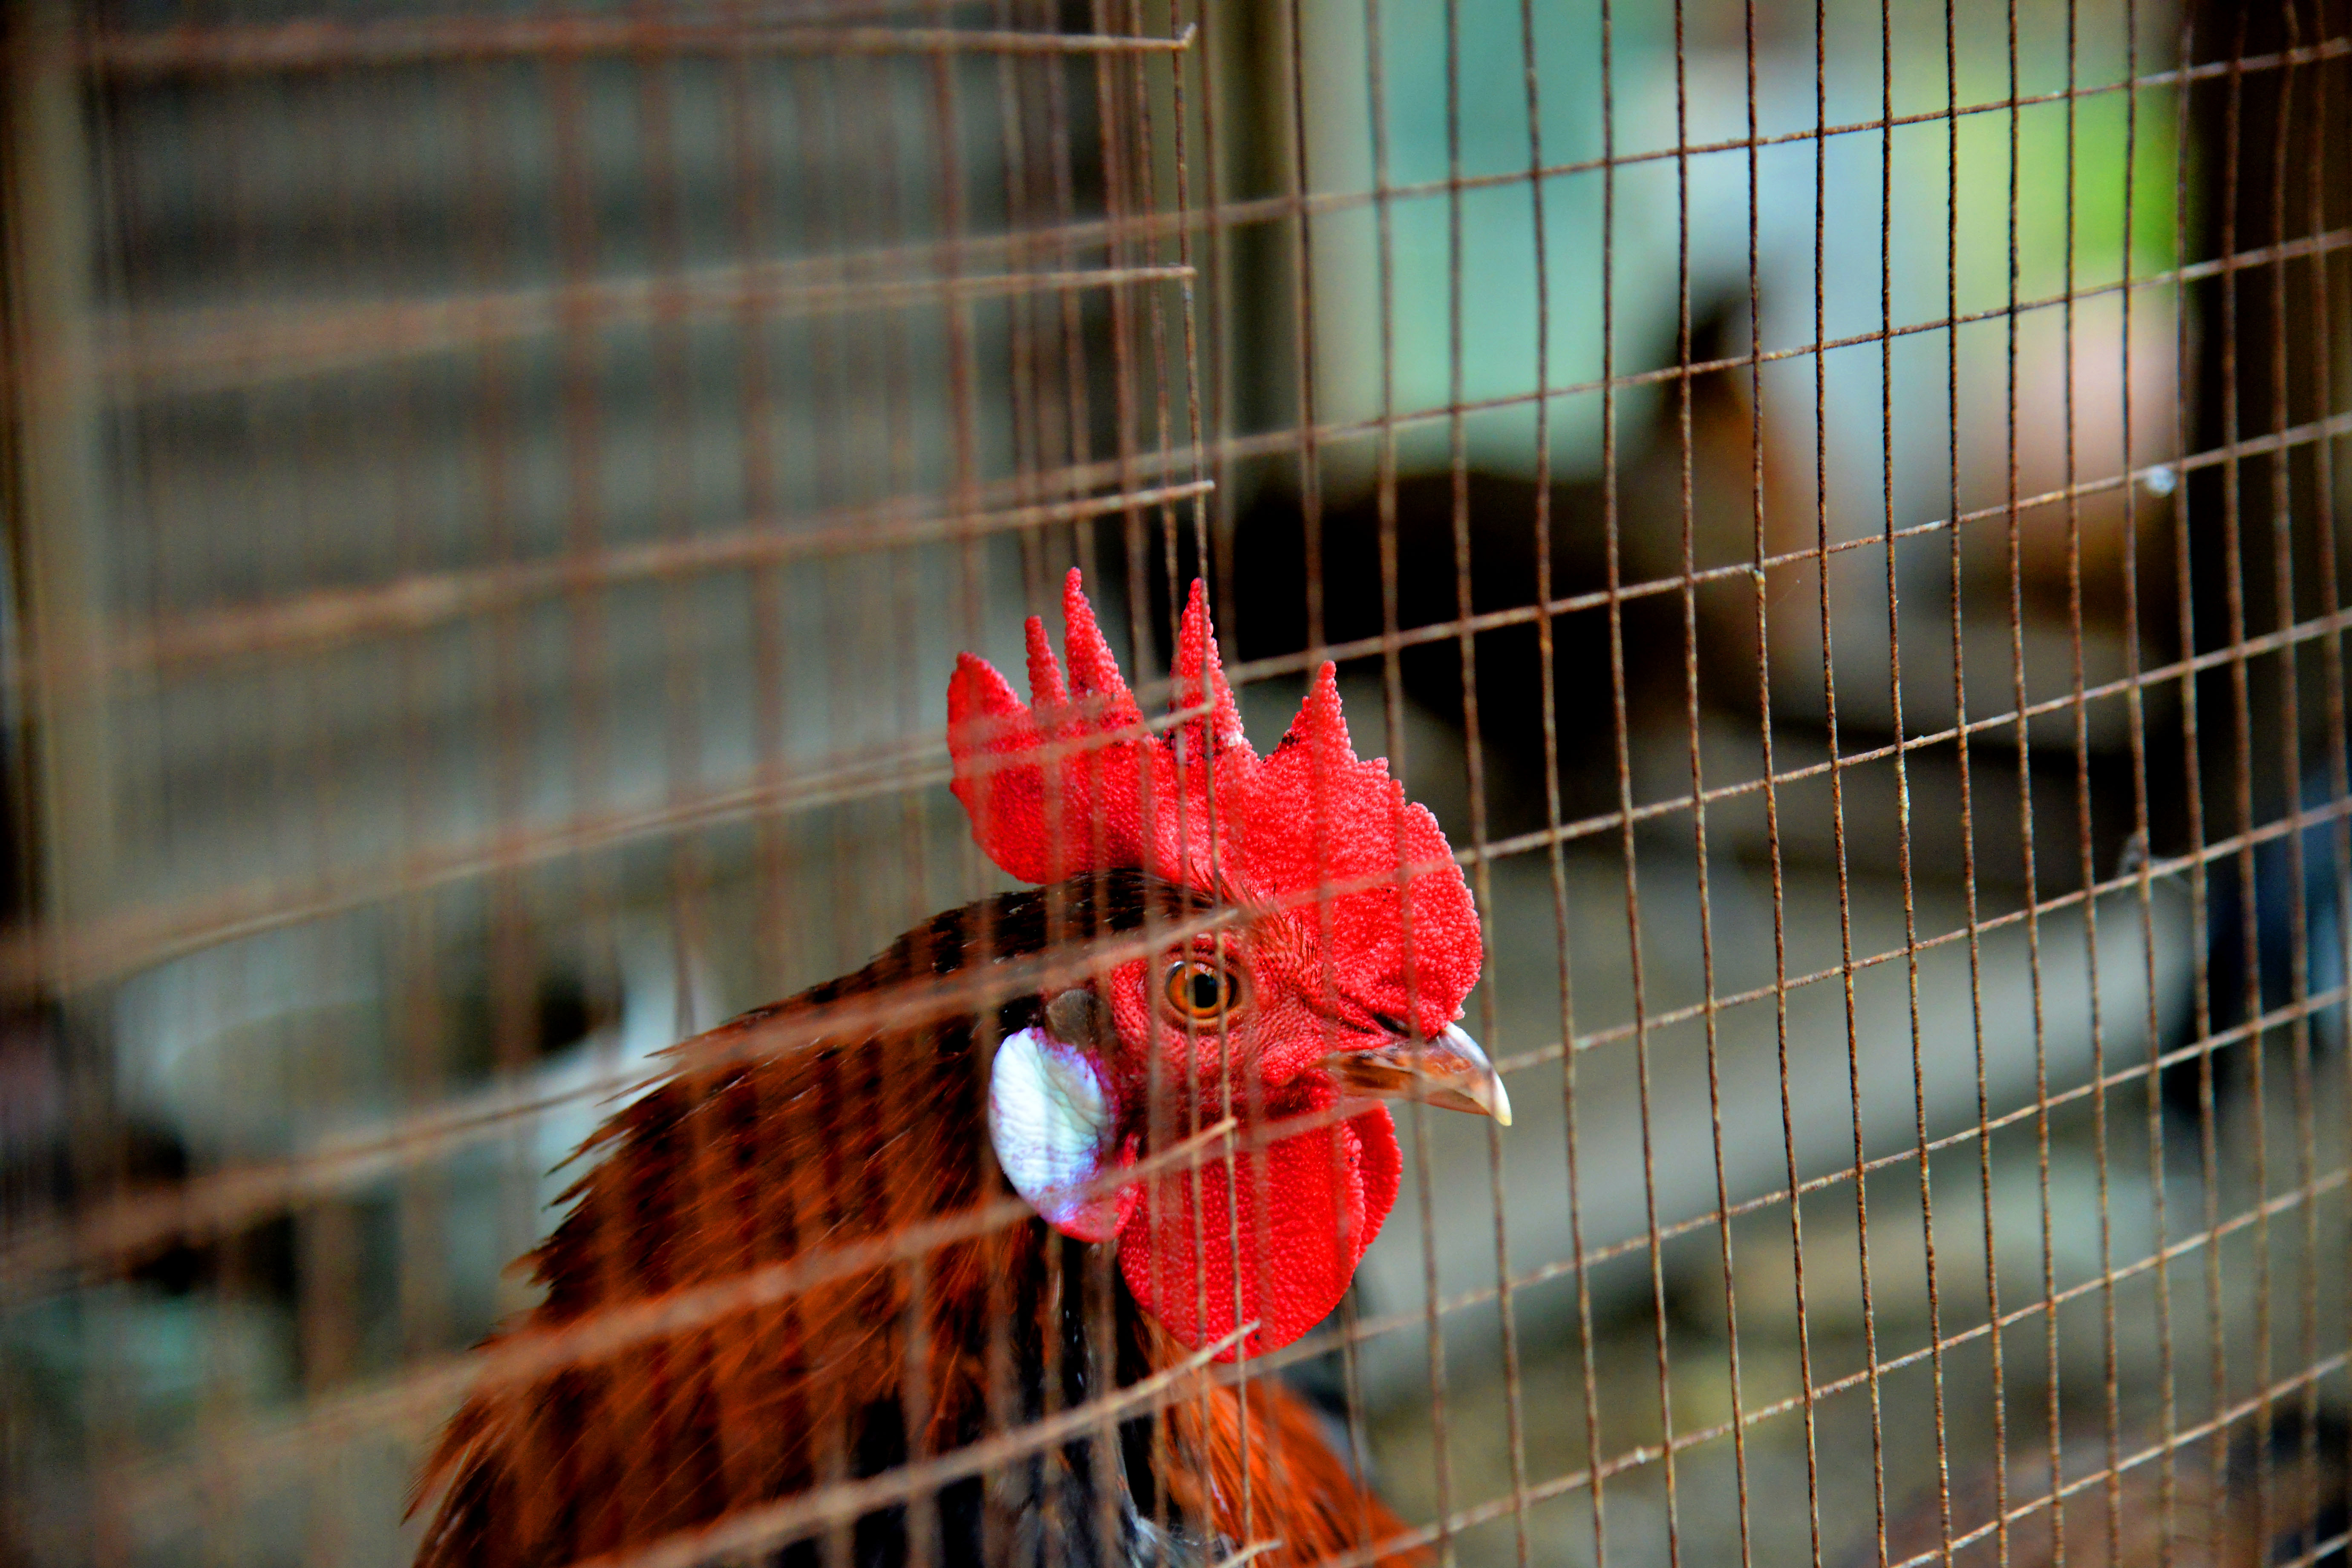 red rooster in cage during daytime